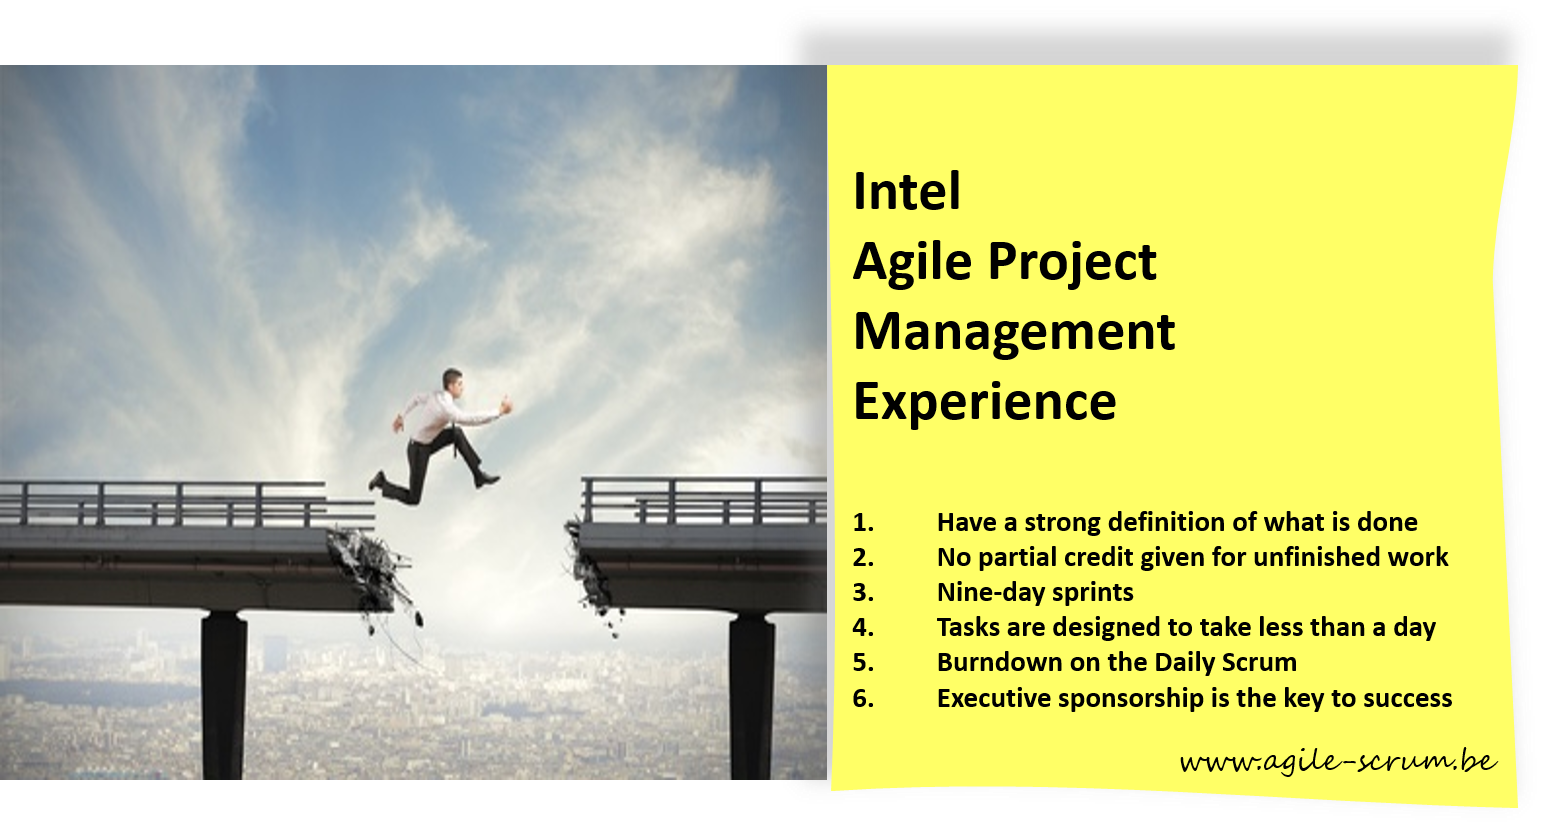 The Intel Scrum Experience: 6 Great Agile Project Management Practices